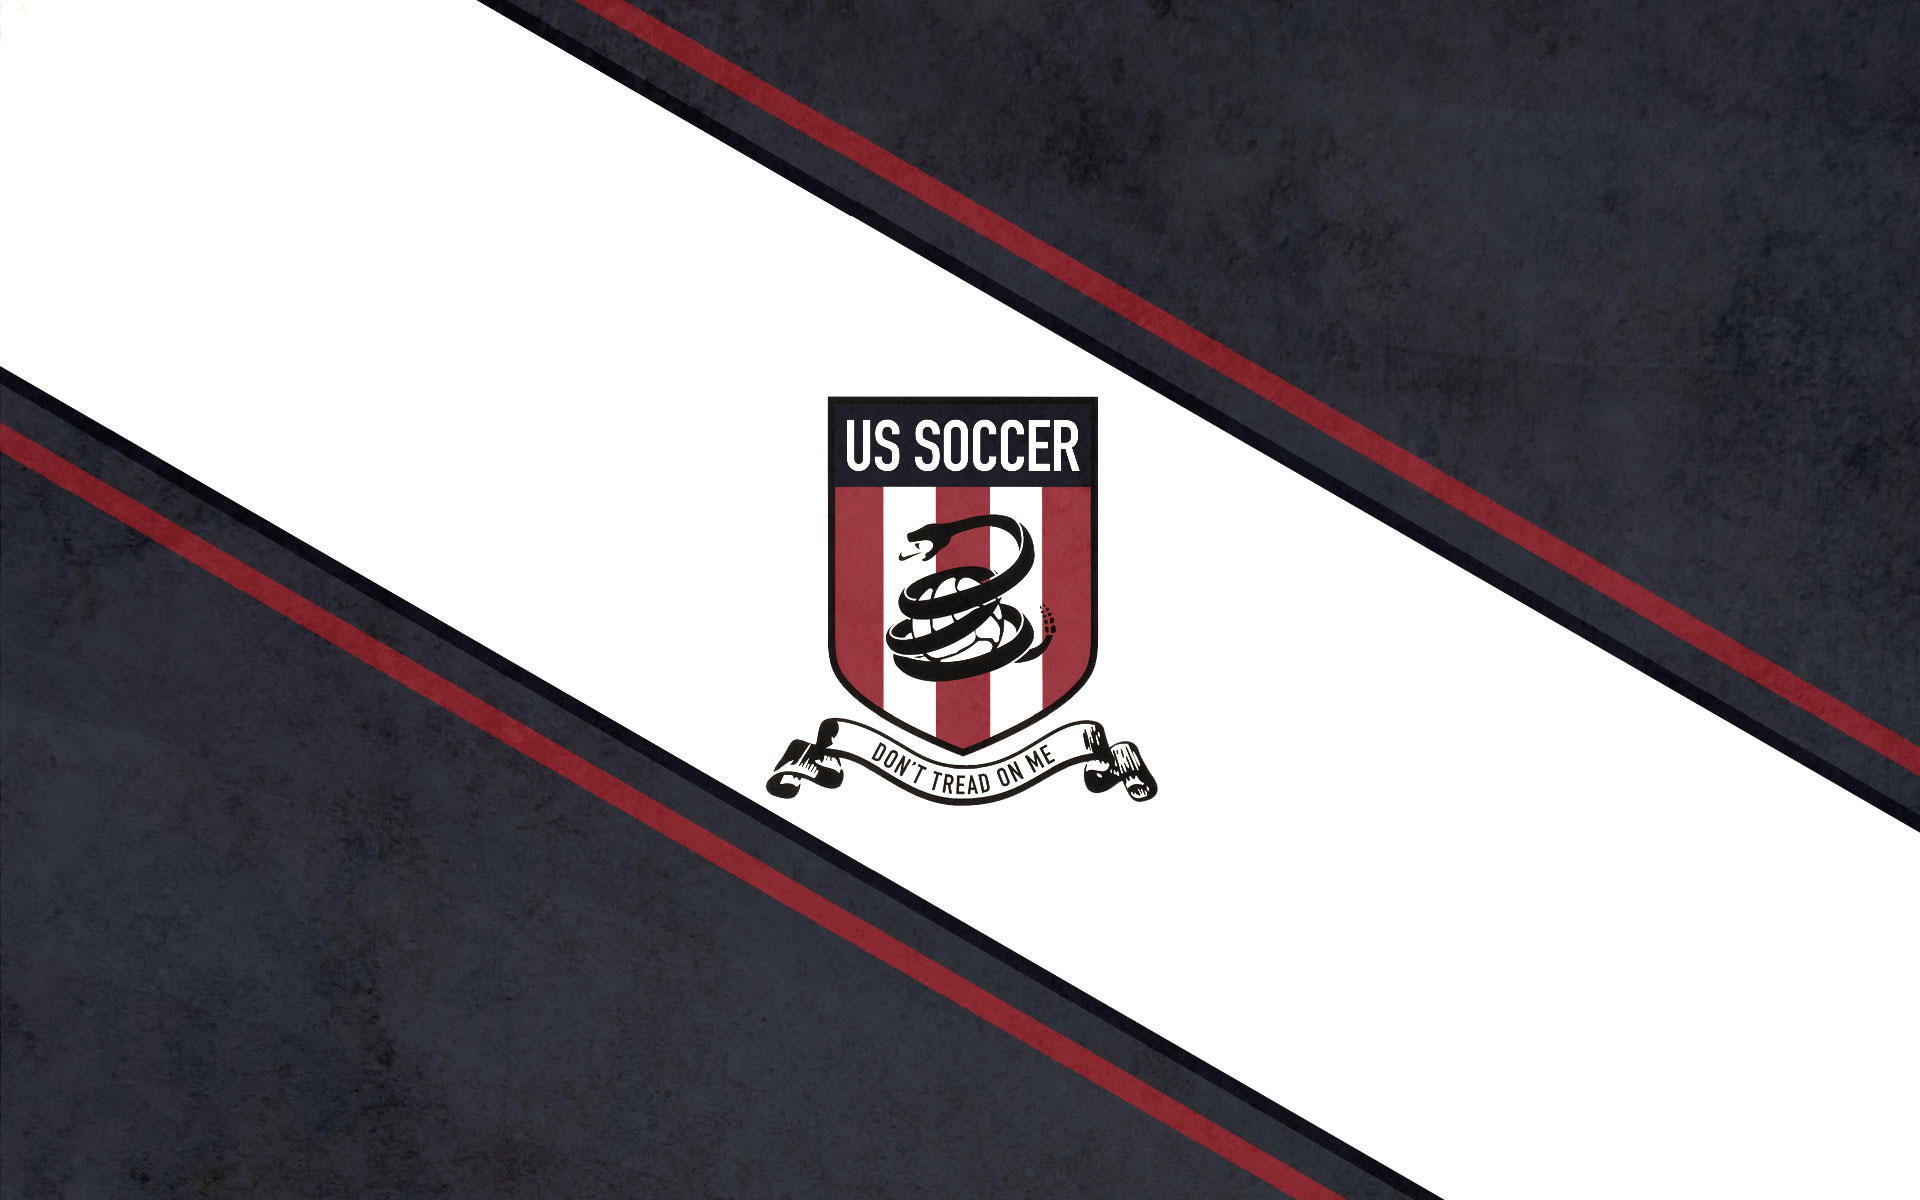 US Soccer Wallpapers US Soccer Myspace Backgrounds US Soccer 1920x1200